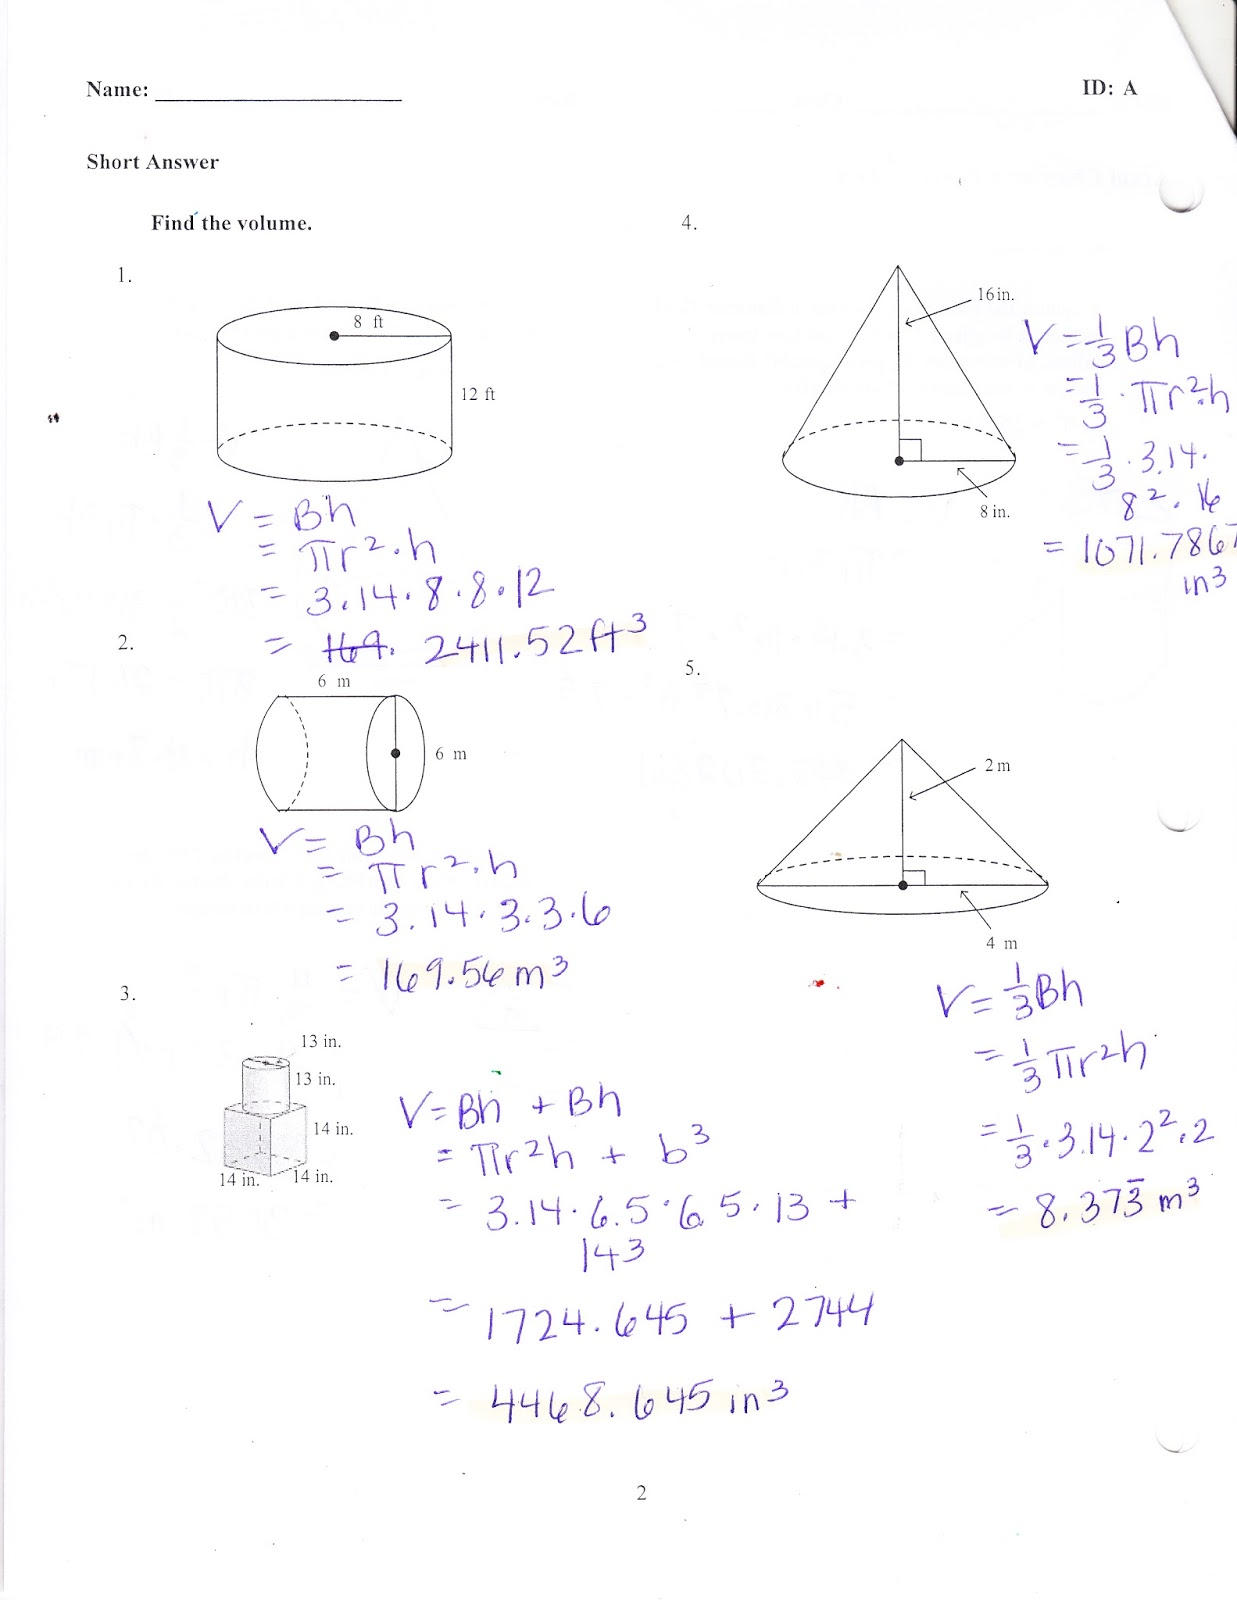 Ms. Jean's ACCEL 7 Blog: Chapter 8 Practice Test Answers